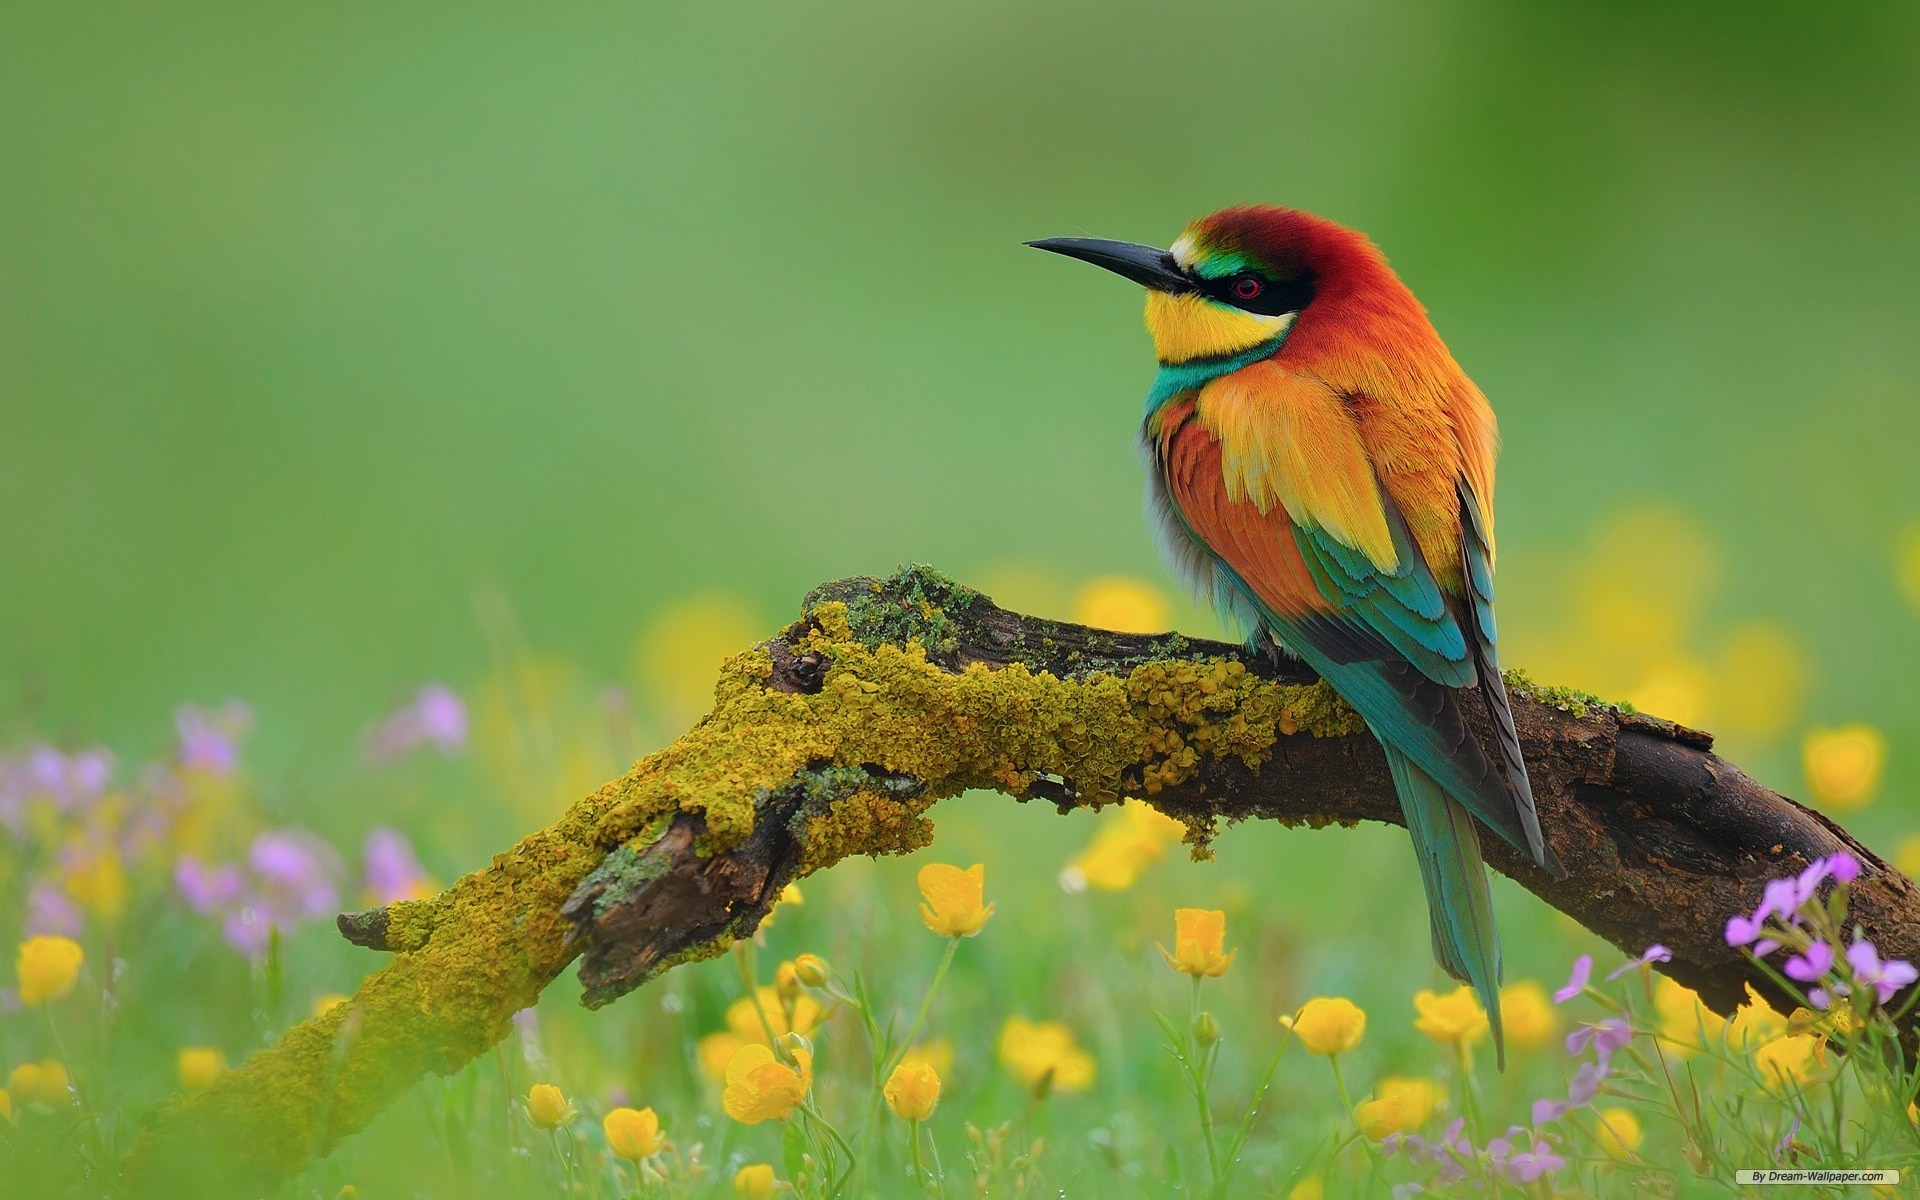 spring animal wallpapers: Spring Animal Wallpaper For Desktop (49+ Images